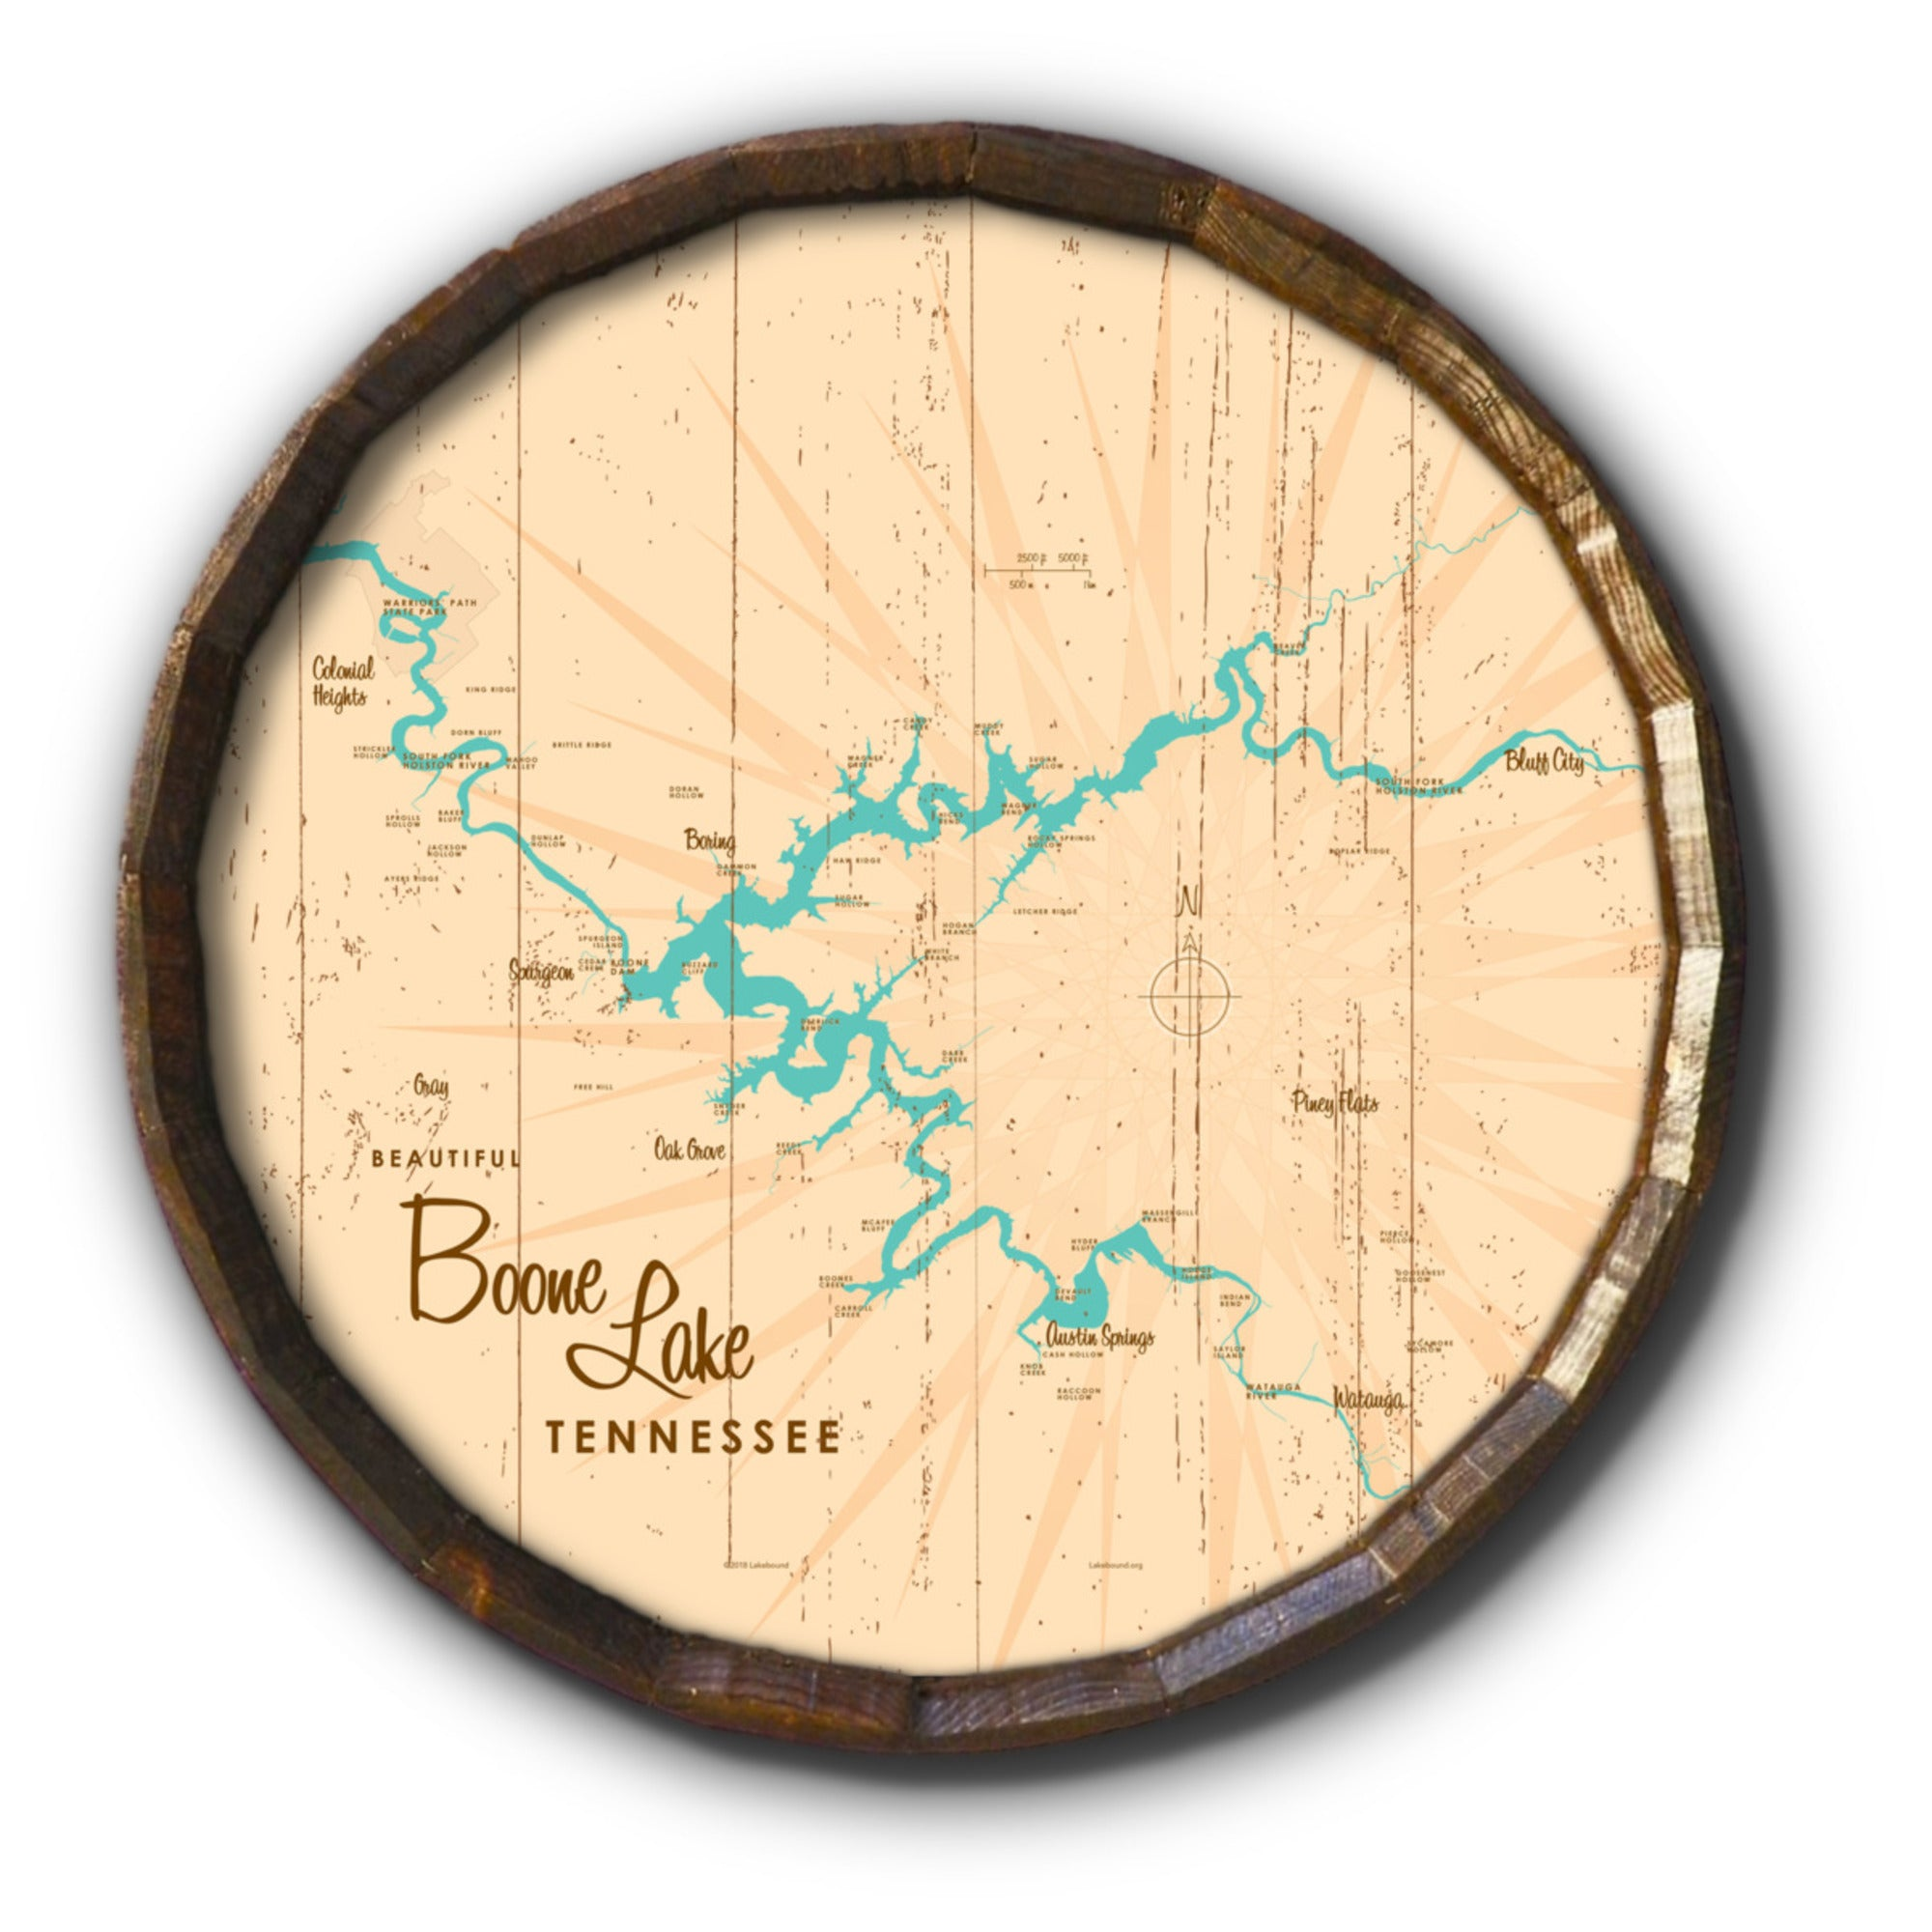 Boone Lake Tennessee, Rustic Barrel End Map Art